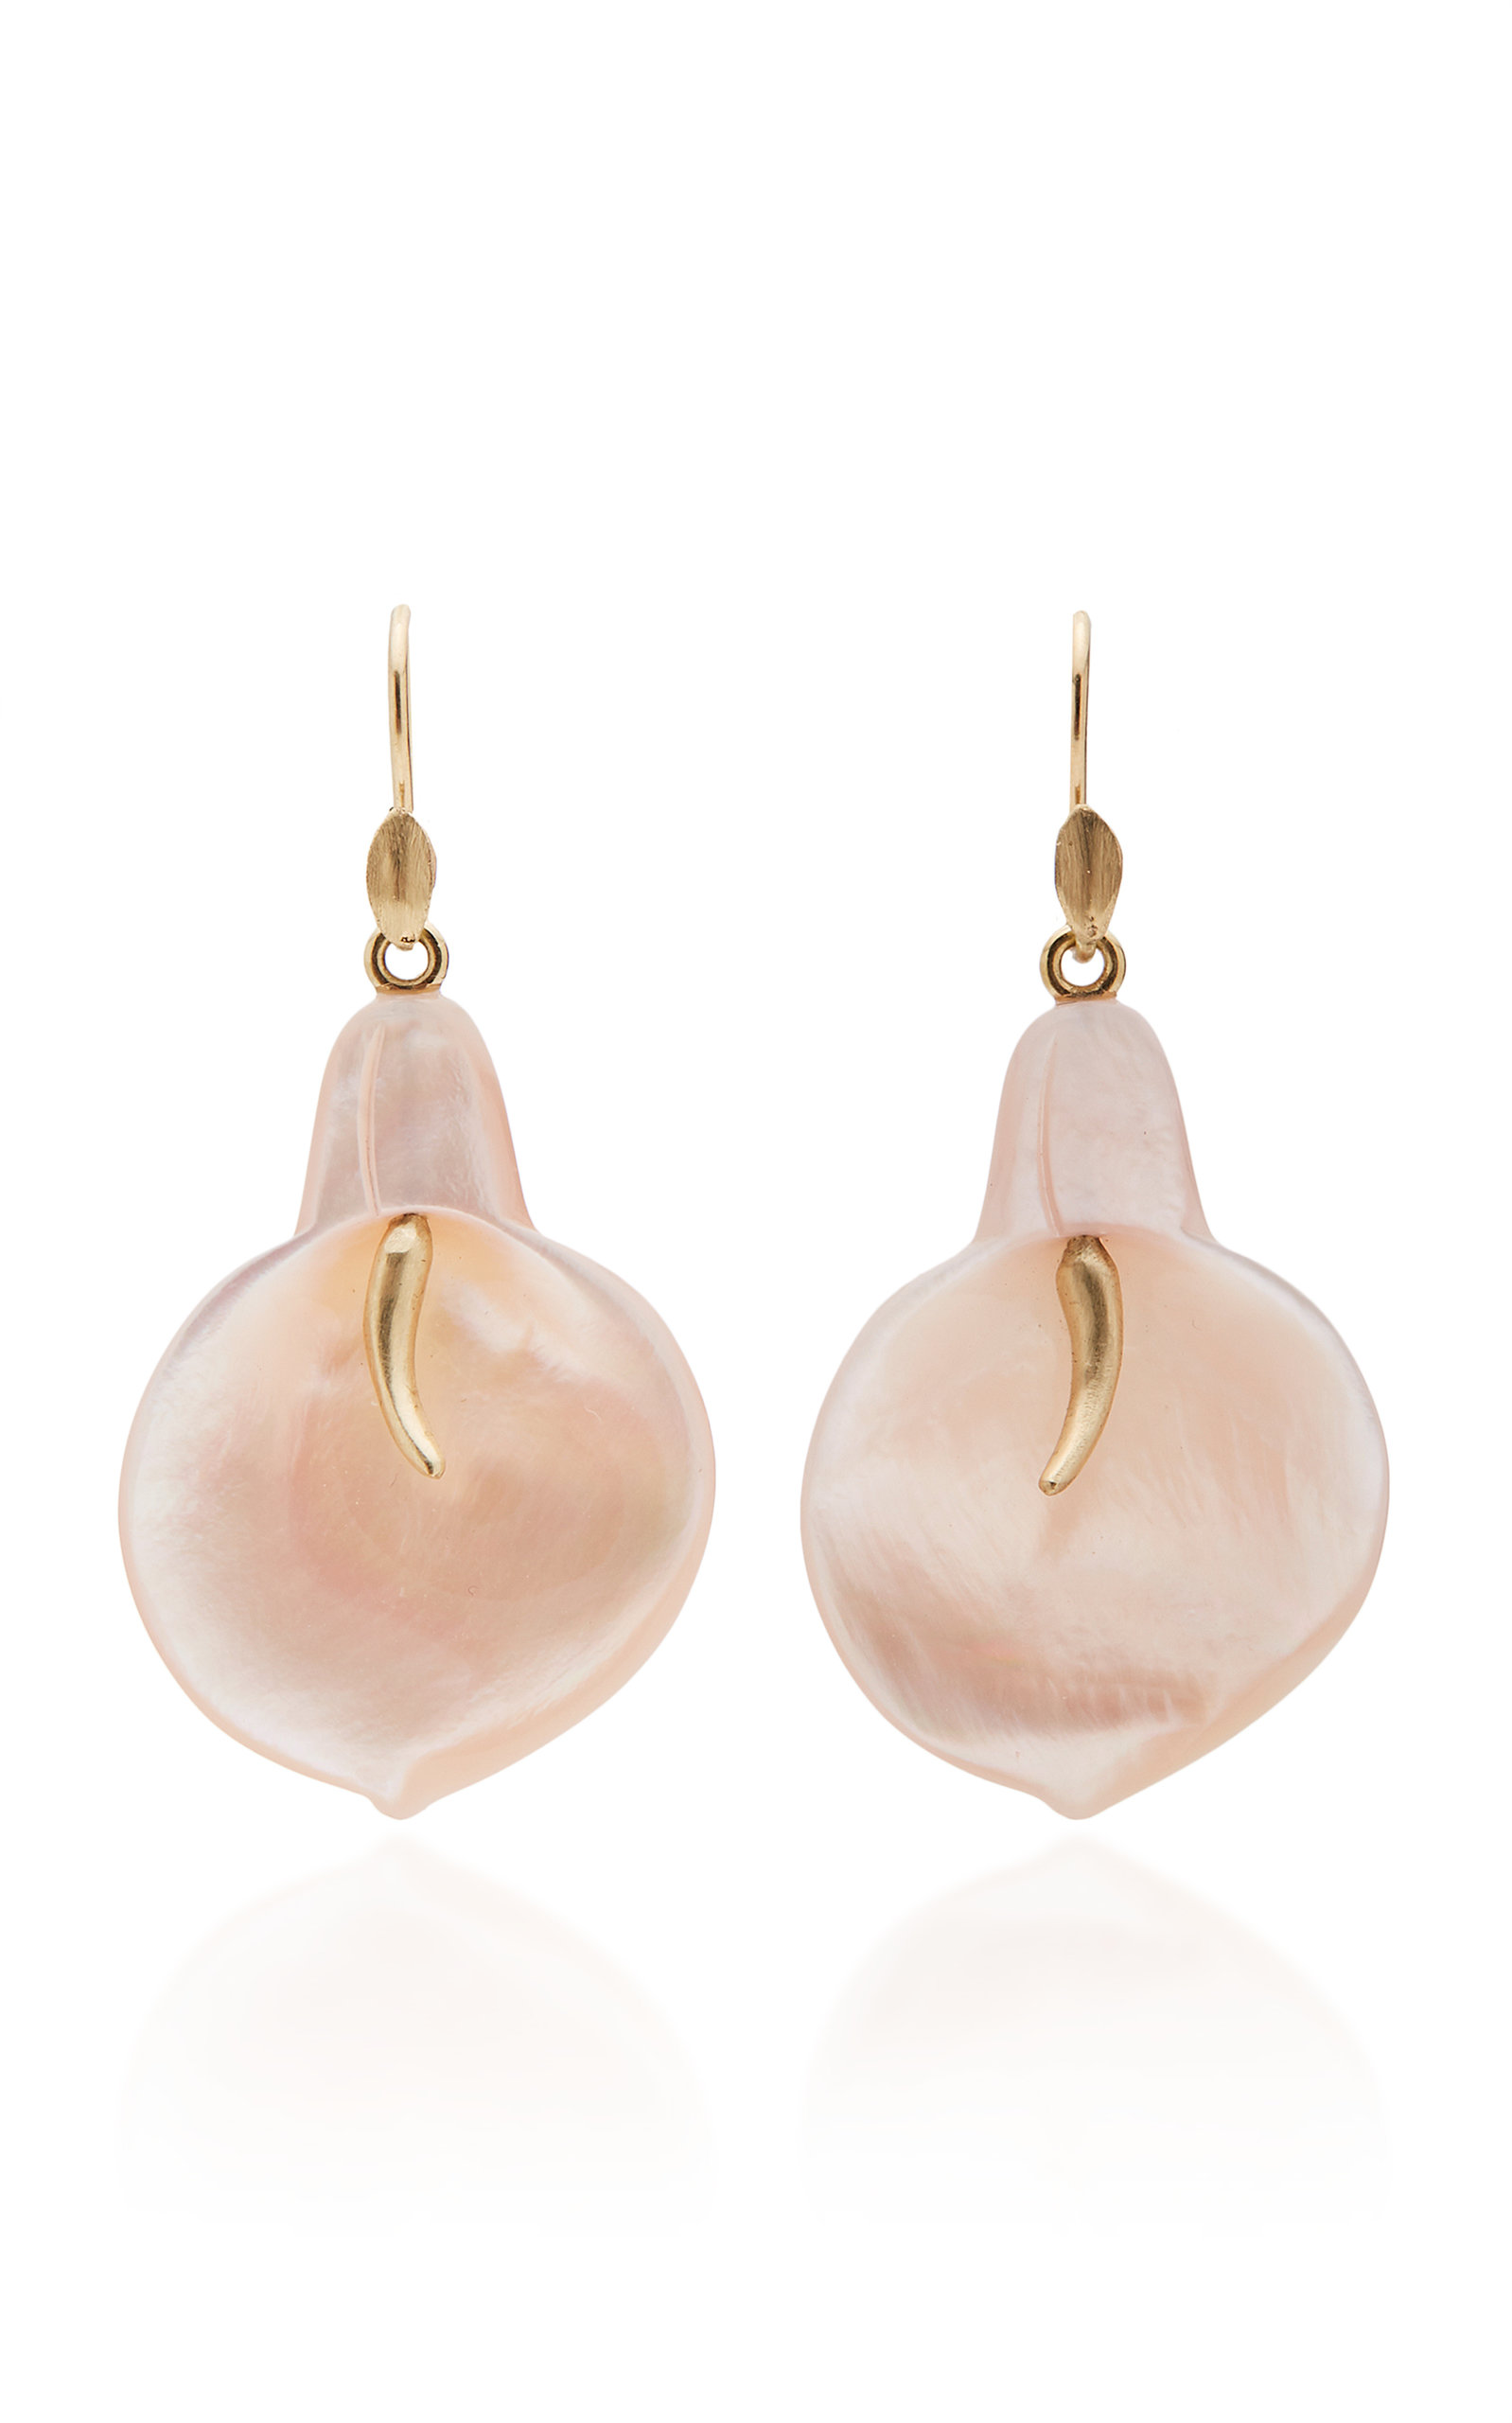 ANNETTE FERDINANDSEN M'O EXCLUSIVE: LARGE MOTHER OF PEARL CALA LILY EARRINGS